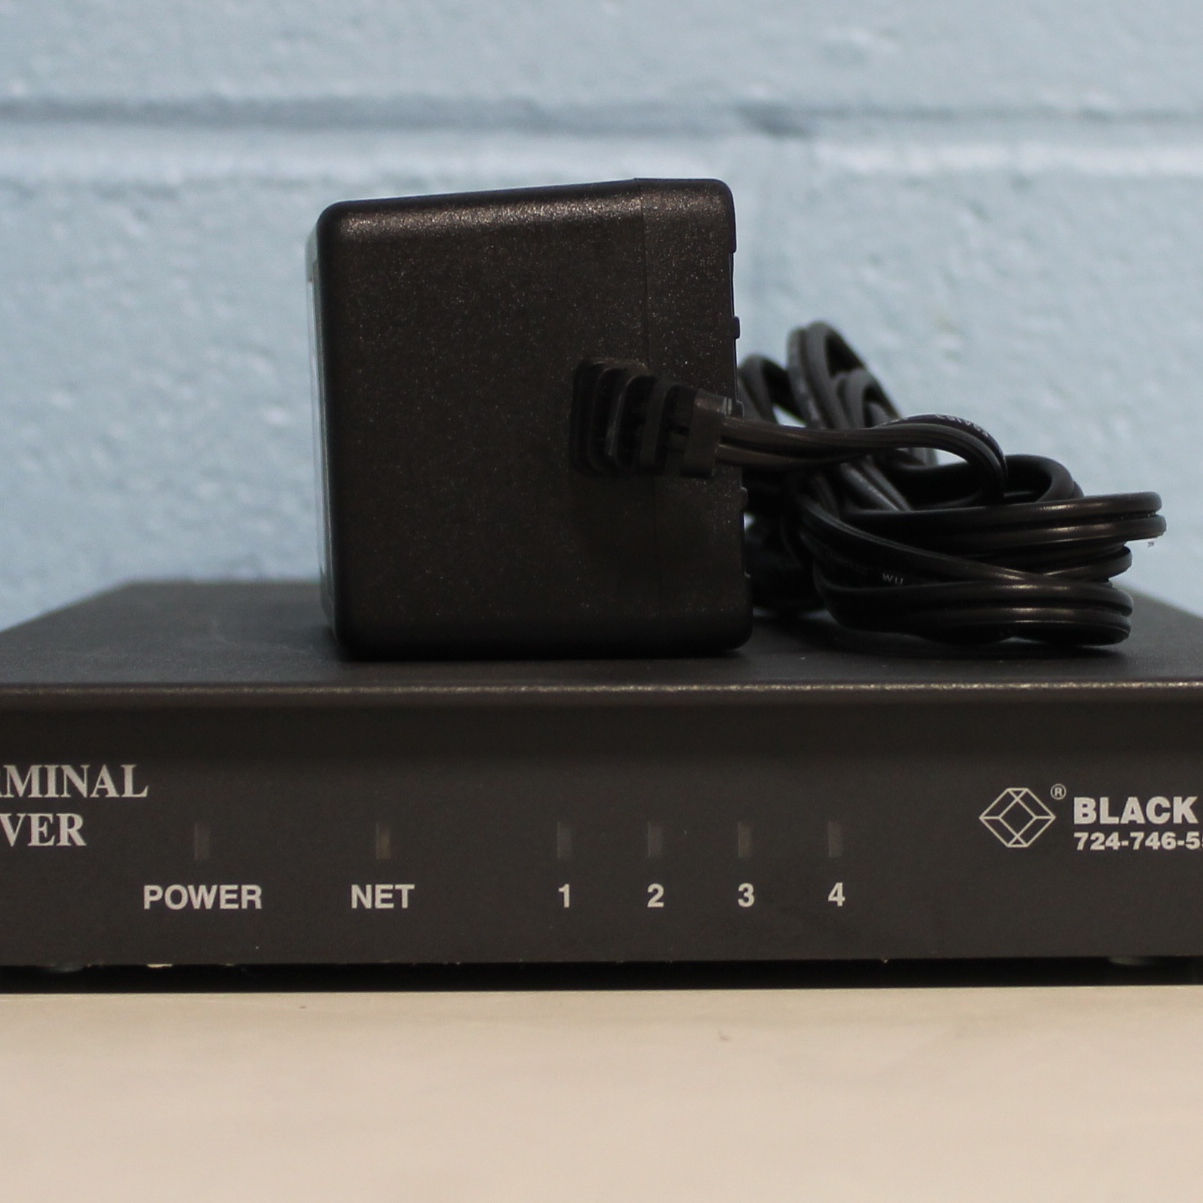 Black Box Enhanced TCP/IP Terminal Server, RJ-45 Async Image